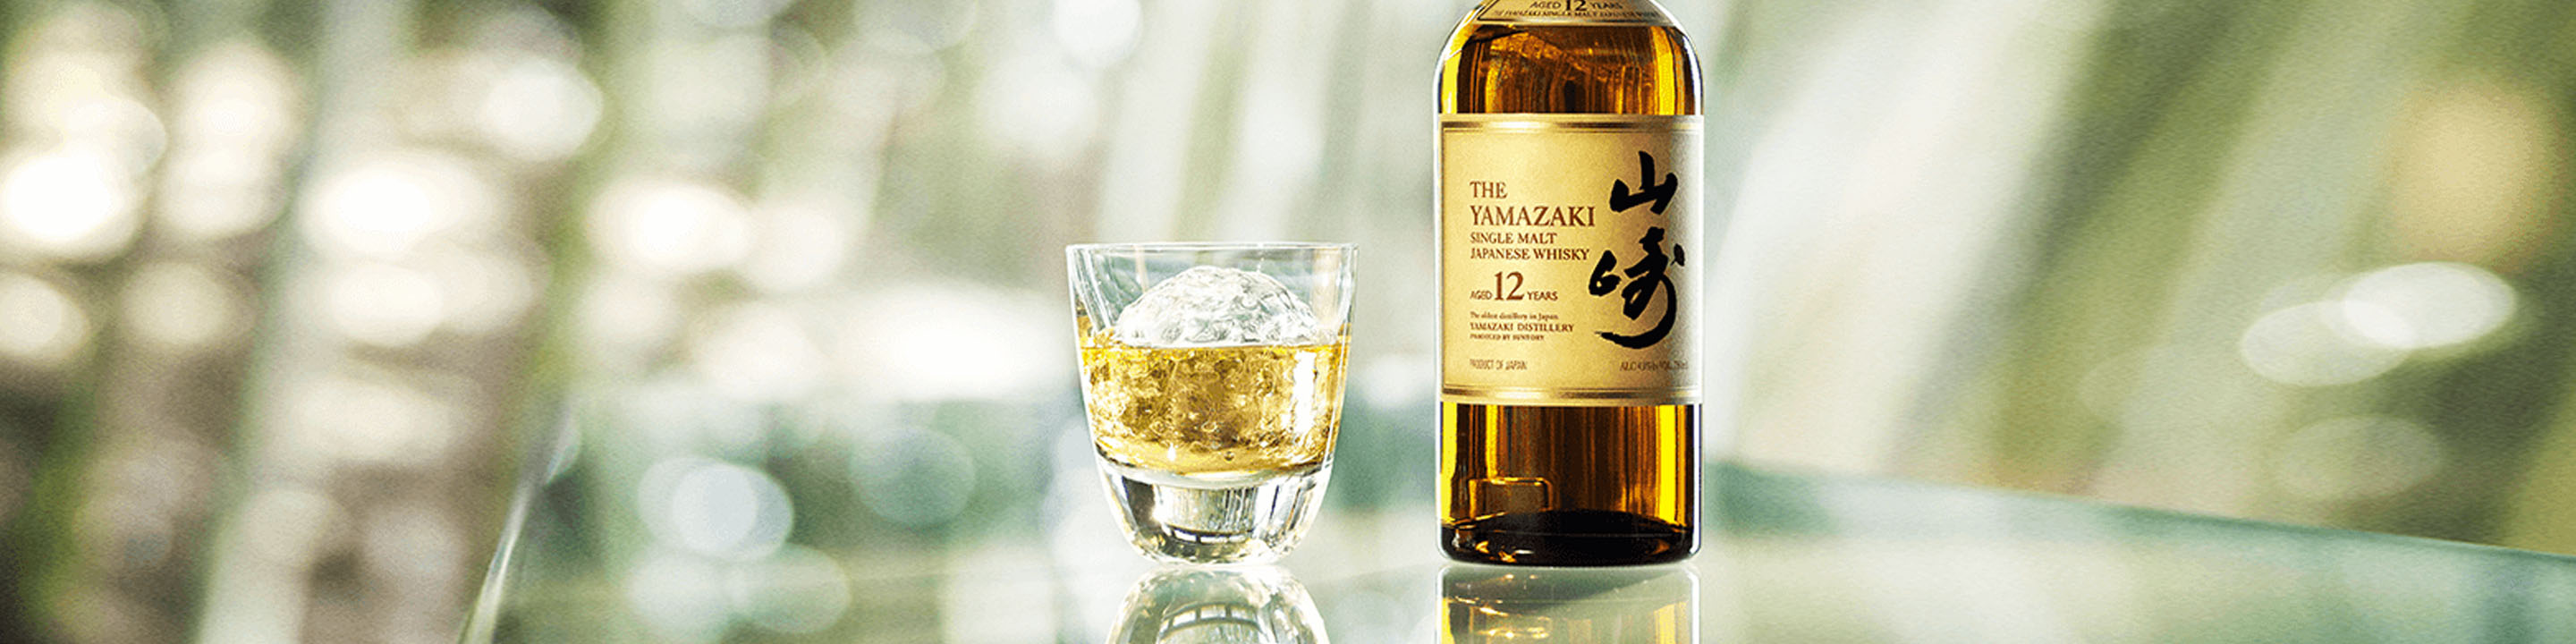 The Pioneer of Japanese whisky. Yamazaki® is Suntory's flagship single malt, multi-layered with fruit and Mizunara aromas. Succulent with soft fruit.   Buy Yamazaki online now from nearby liquor stores via Minibar Delivery.